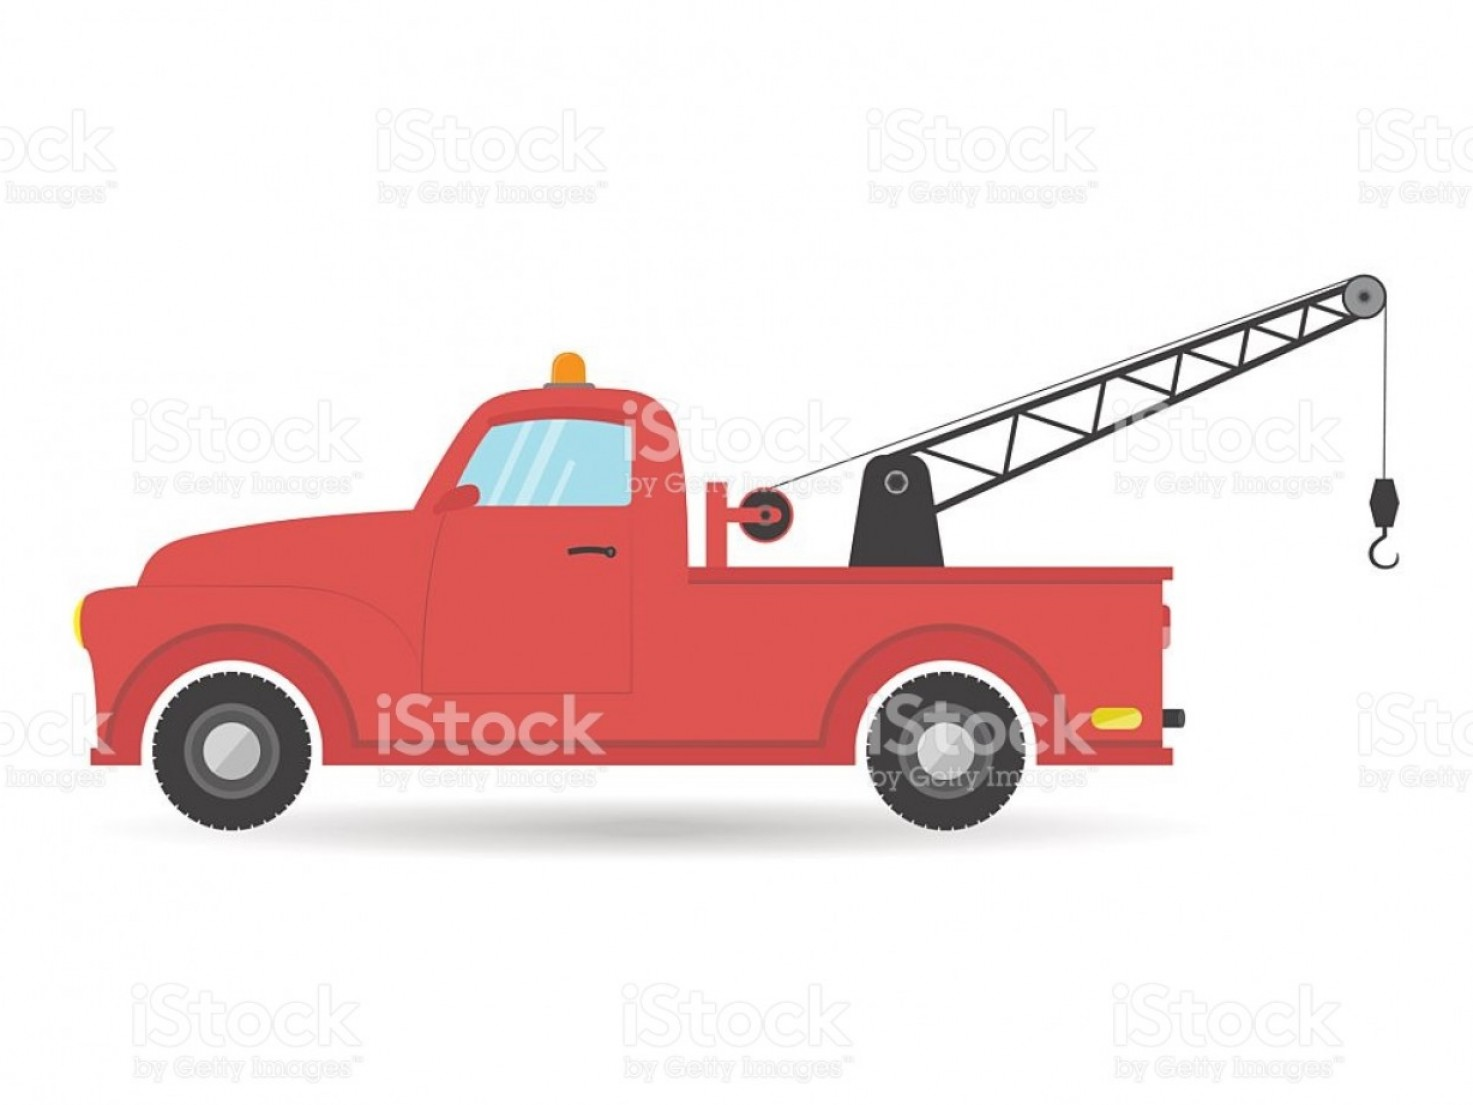 Towing Vector Clip Art: Tow Truck Van Car Vector Vehicle Icon Illustration Pick Up Auto Gm